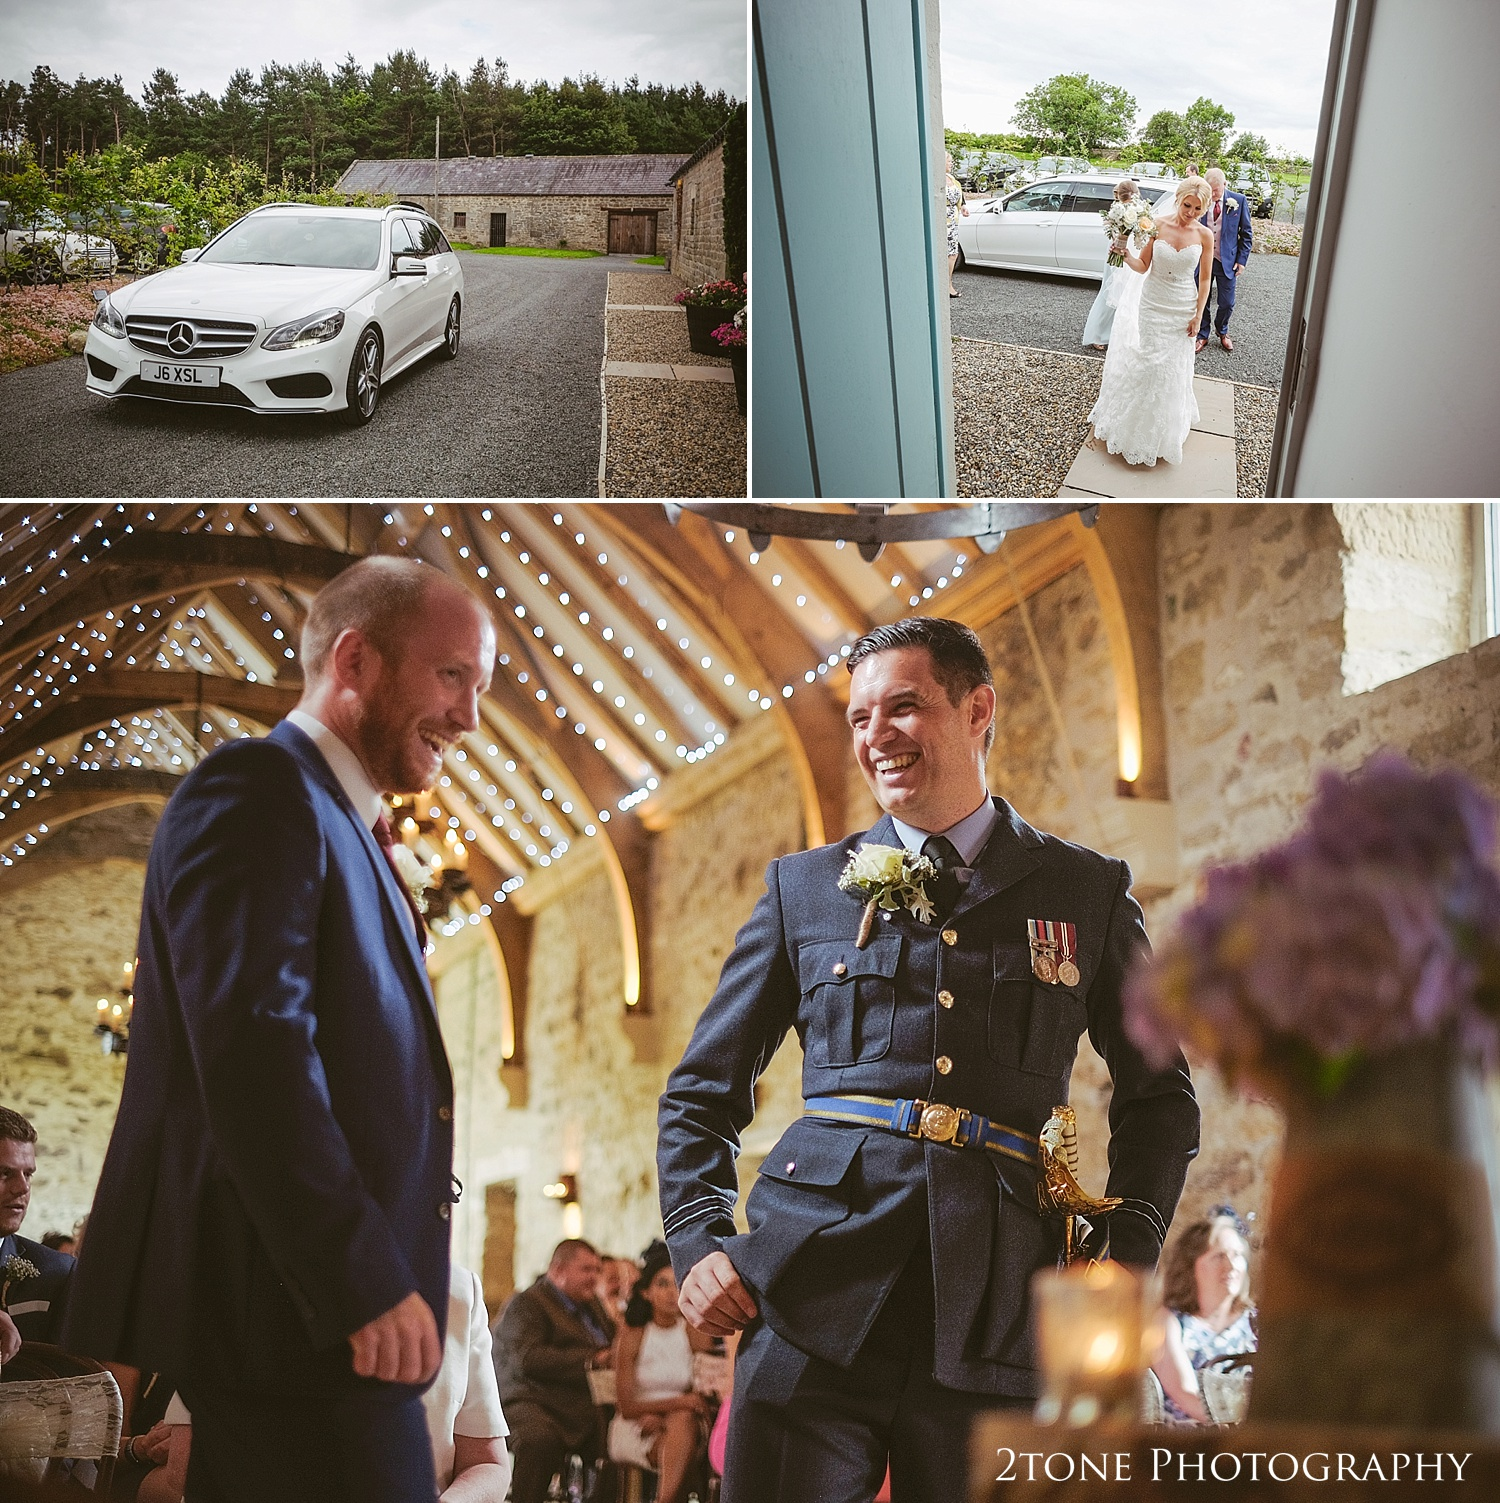 Groom waiting for the bride at Healey Barn wedding venue by wedding photography team 2tone Photography www.2tonephotography.co.uk